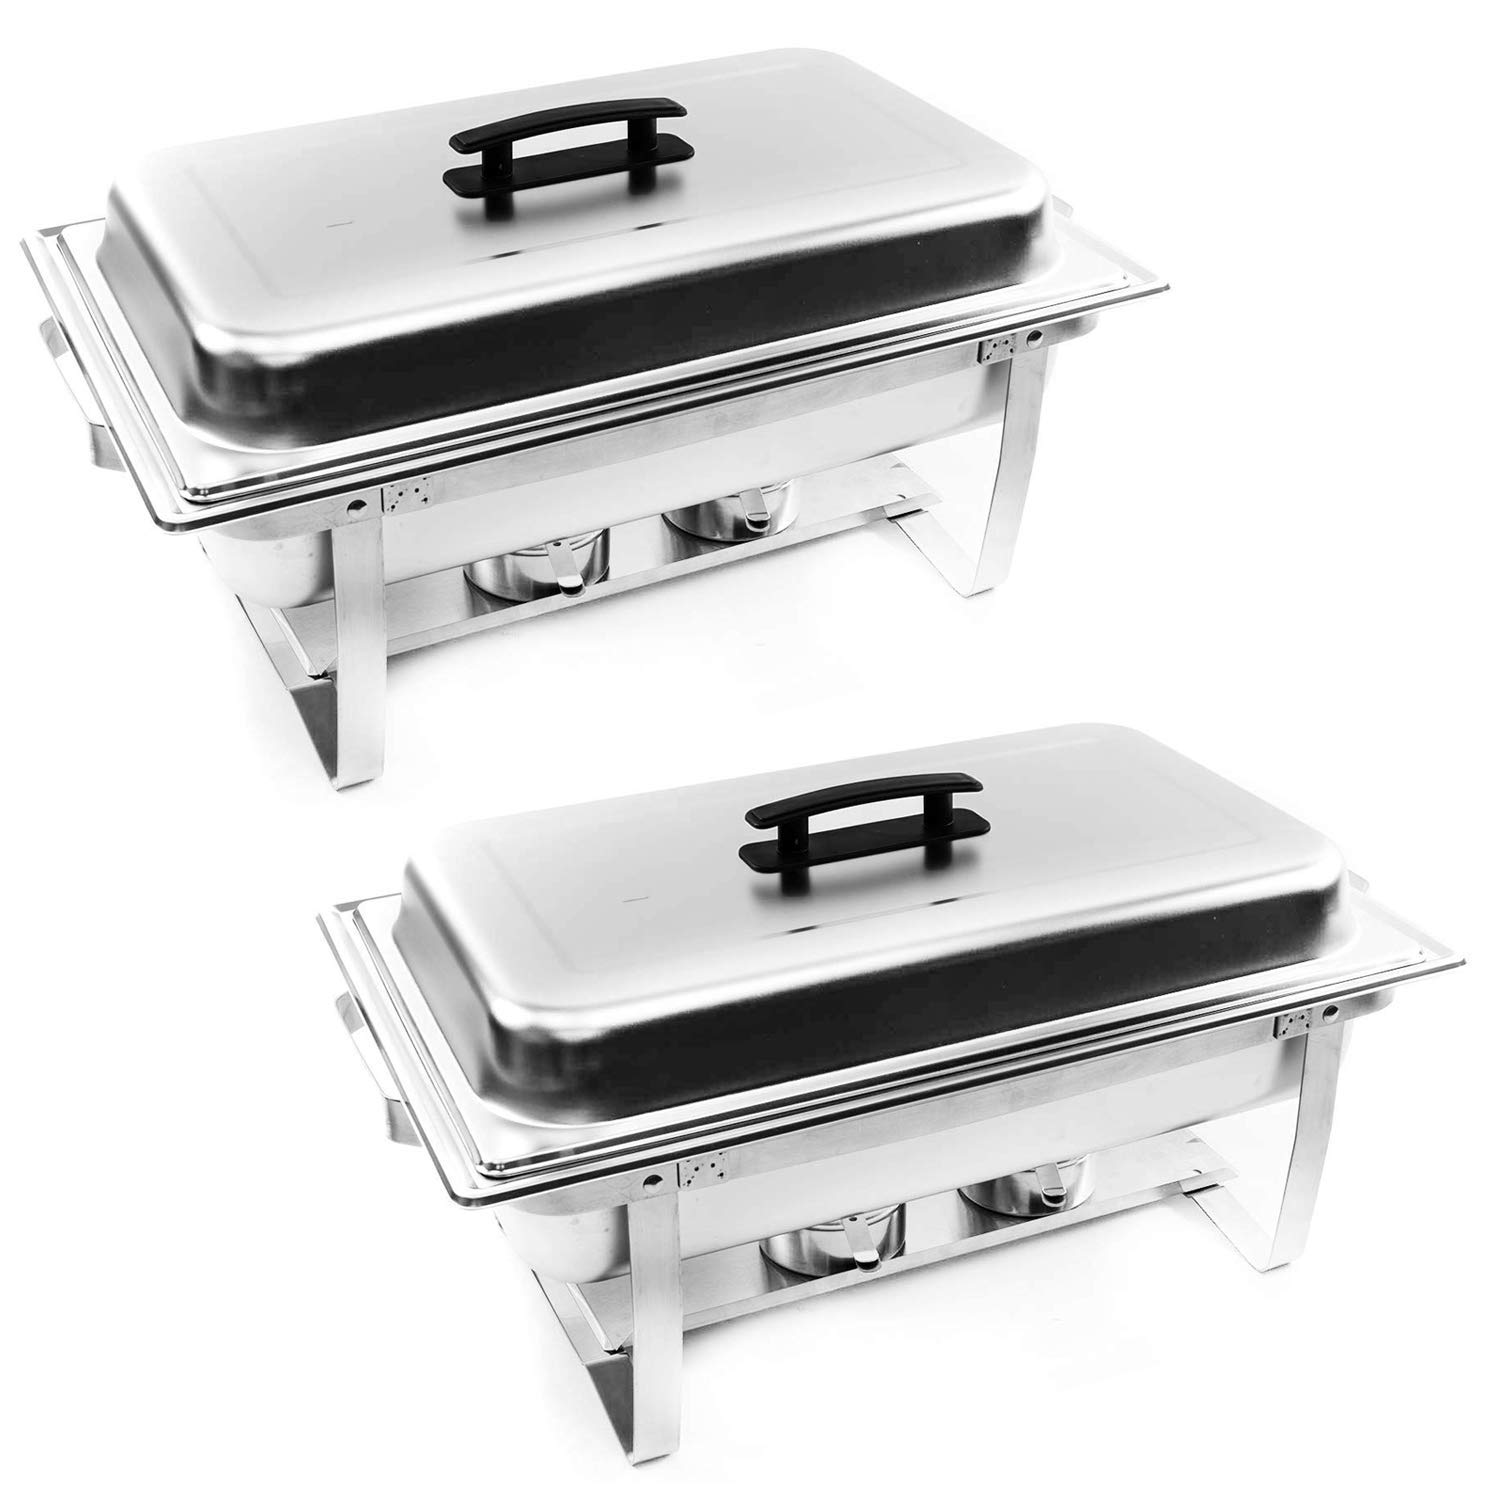 Alpha Living 70012 2 Pack 8QT Chafing Dish High Grade Stainless Steel Chafer Complete Set by ALPHA LIVING